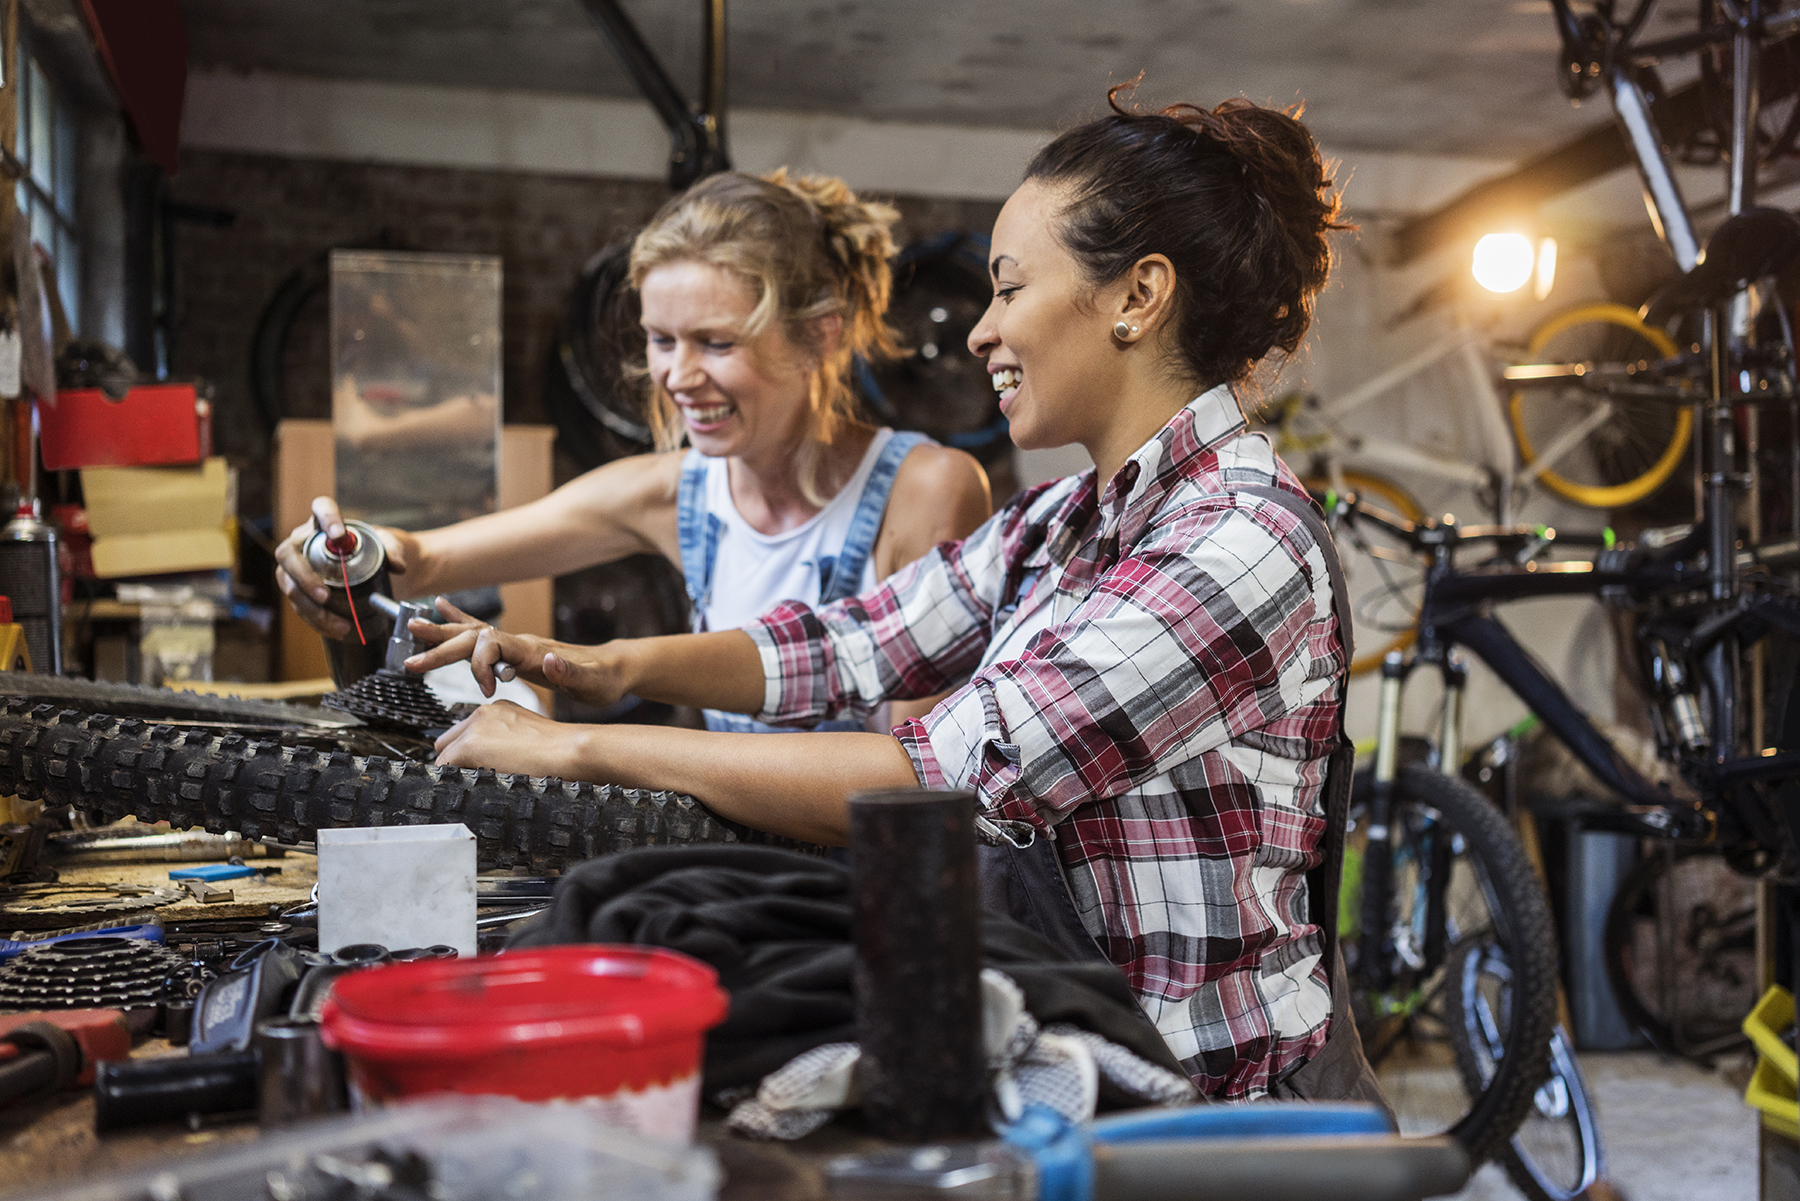 Two women fixing bicycle's in their workshop